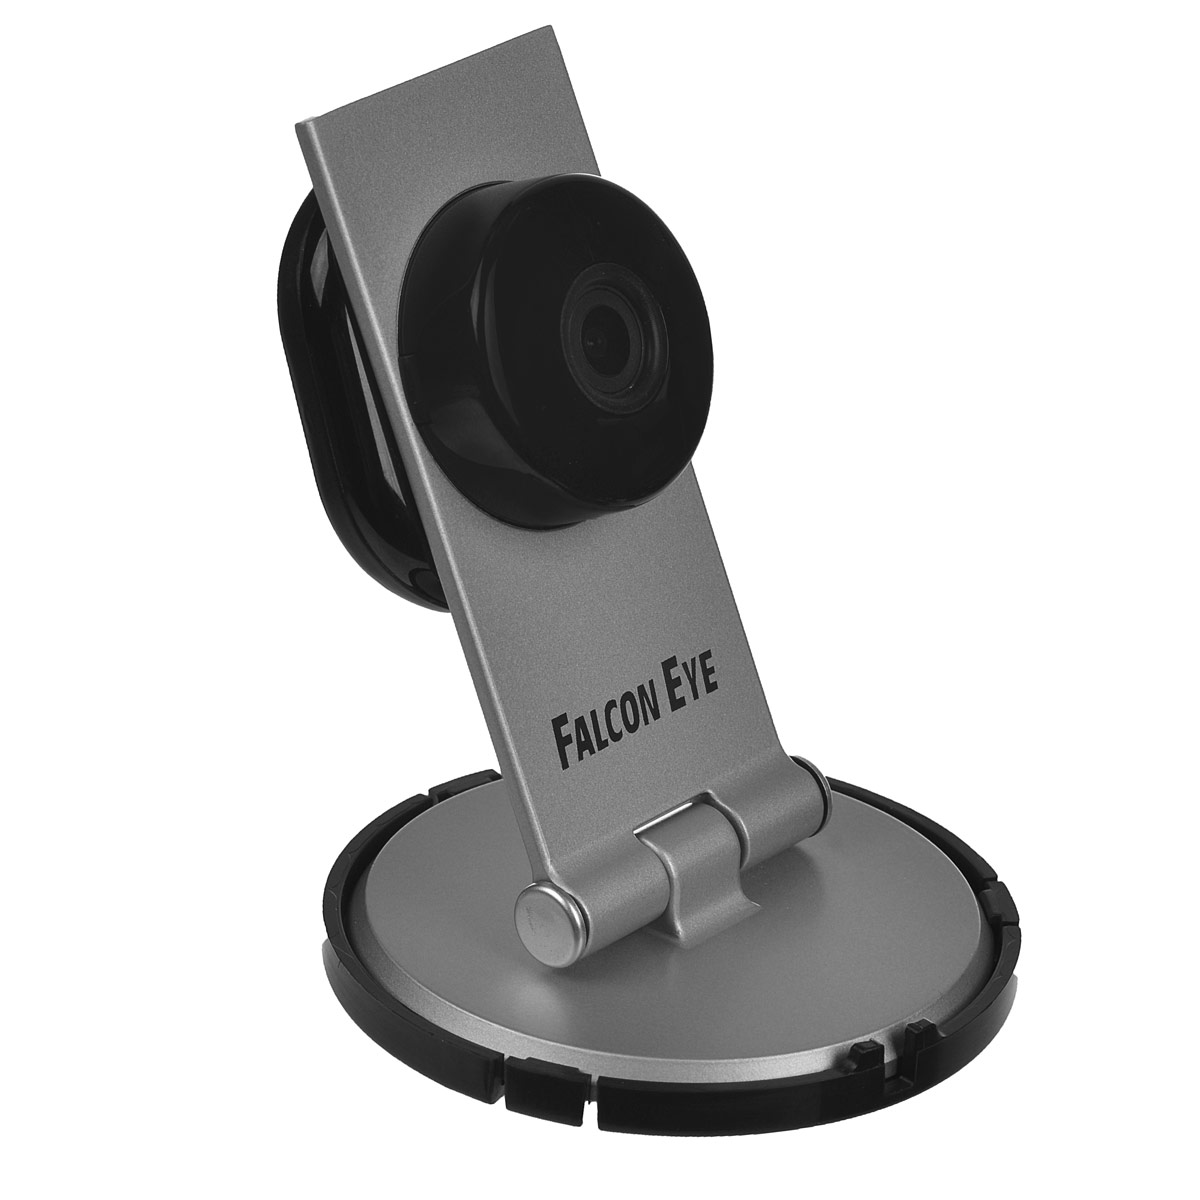 Falcon Eye FE-ITR1300 беcпроводная IP-камера